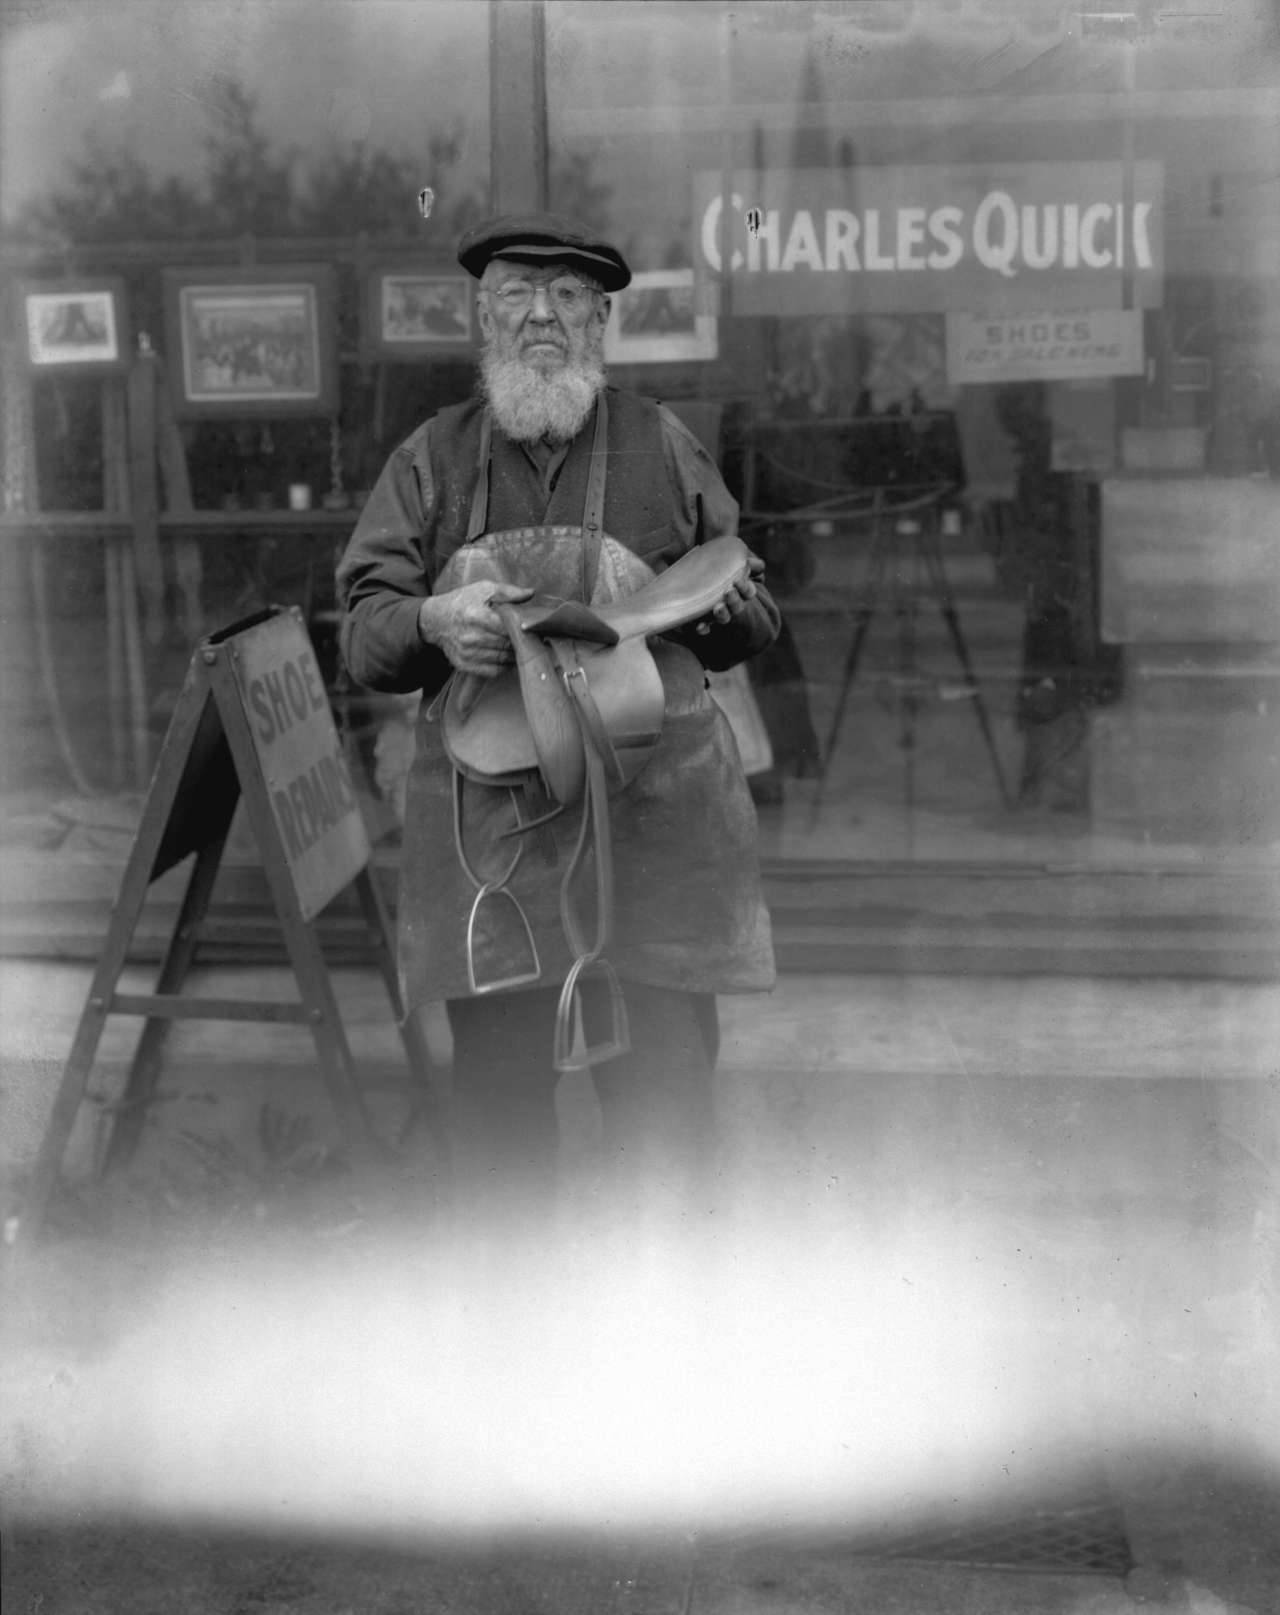 Charles Quick, 1920s Dad Quick outside his shoe repair/saddle making shop on Powell Street. Source: Photo by Stuart Thomson, City of Vancouver Archives #99-3197